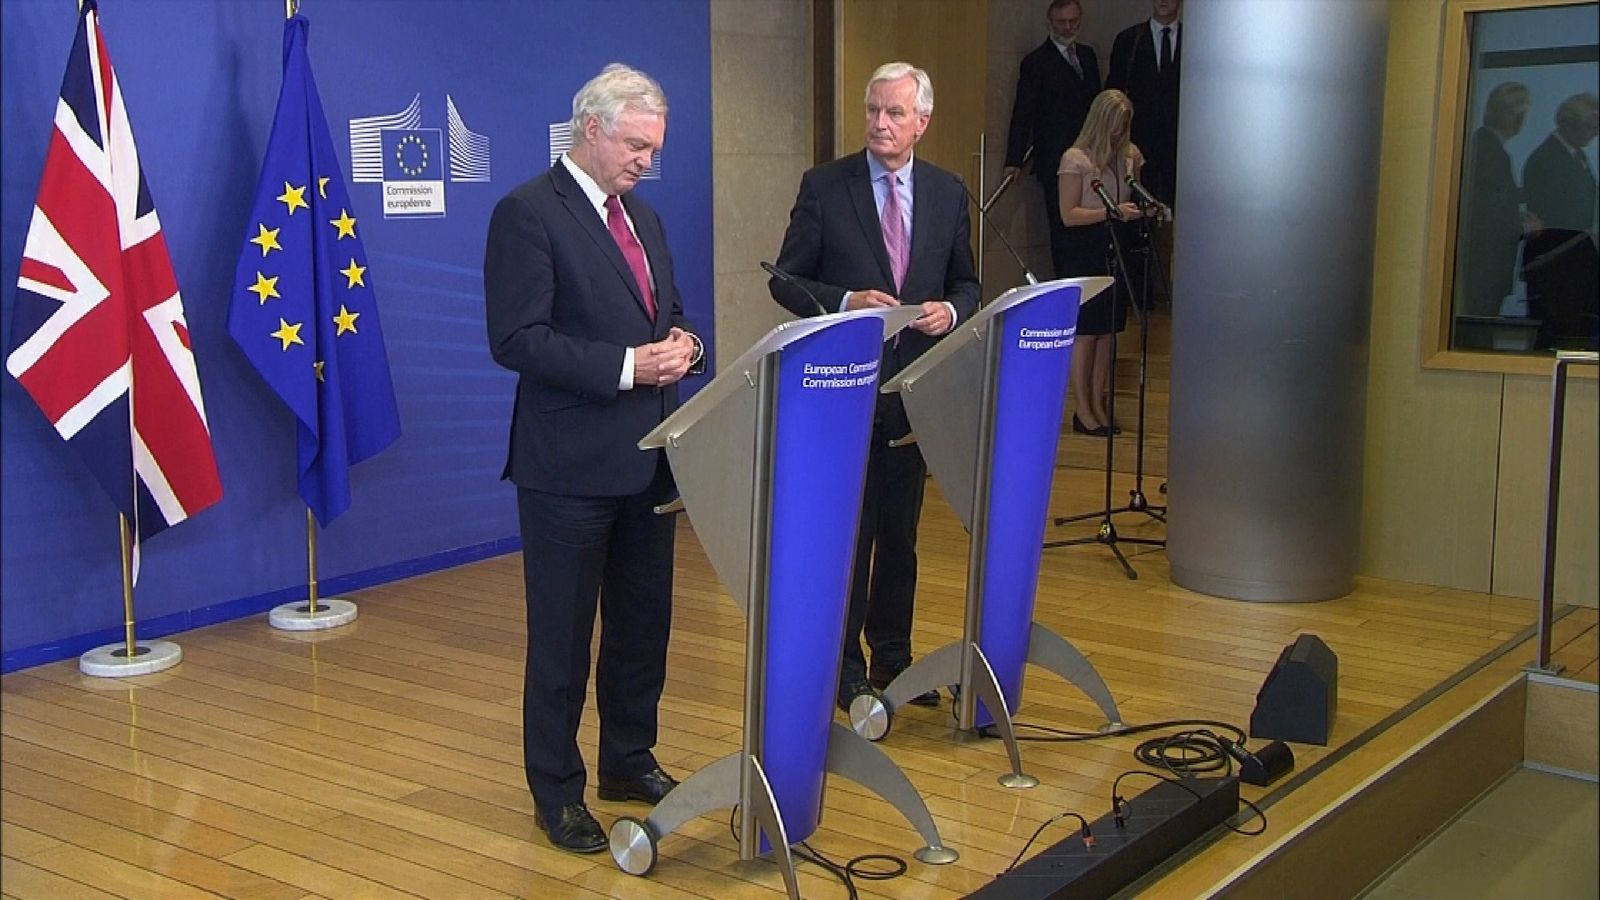 Brexit Secretary David Davis (L) and the EU chief negotiator Michel Barnier